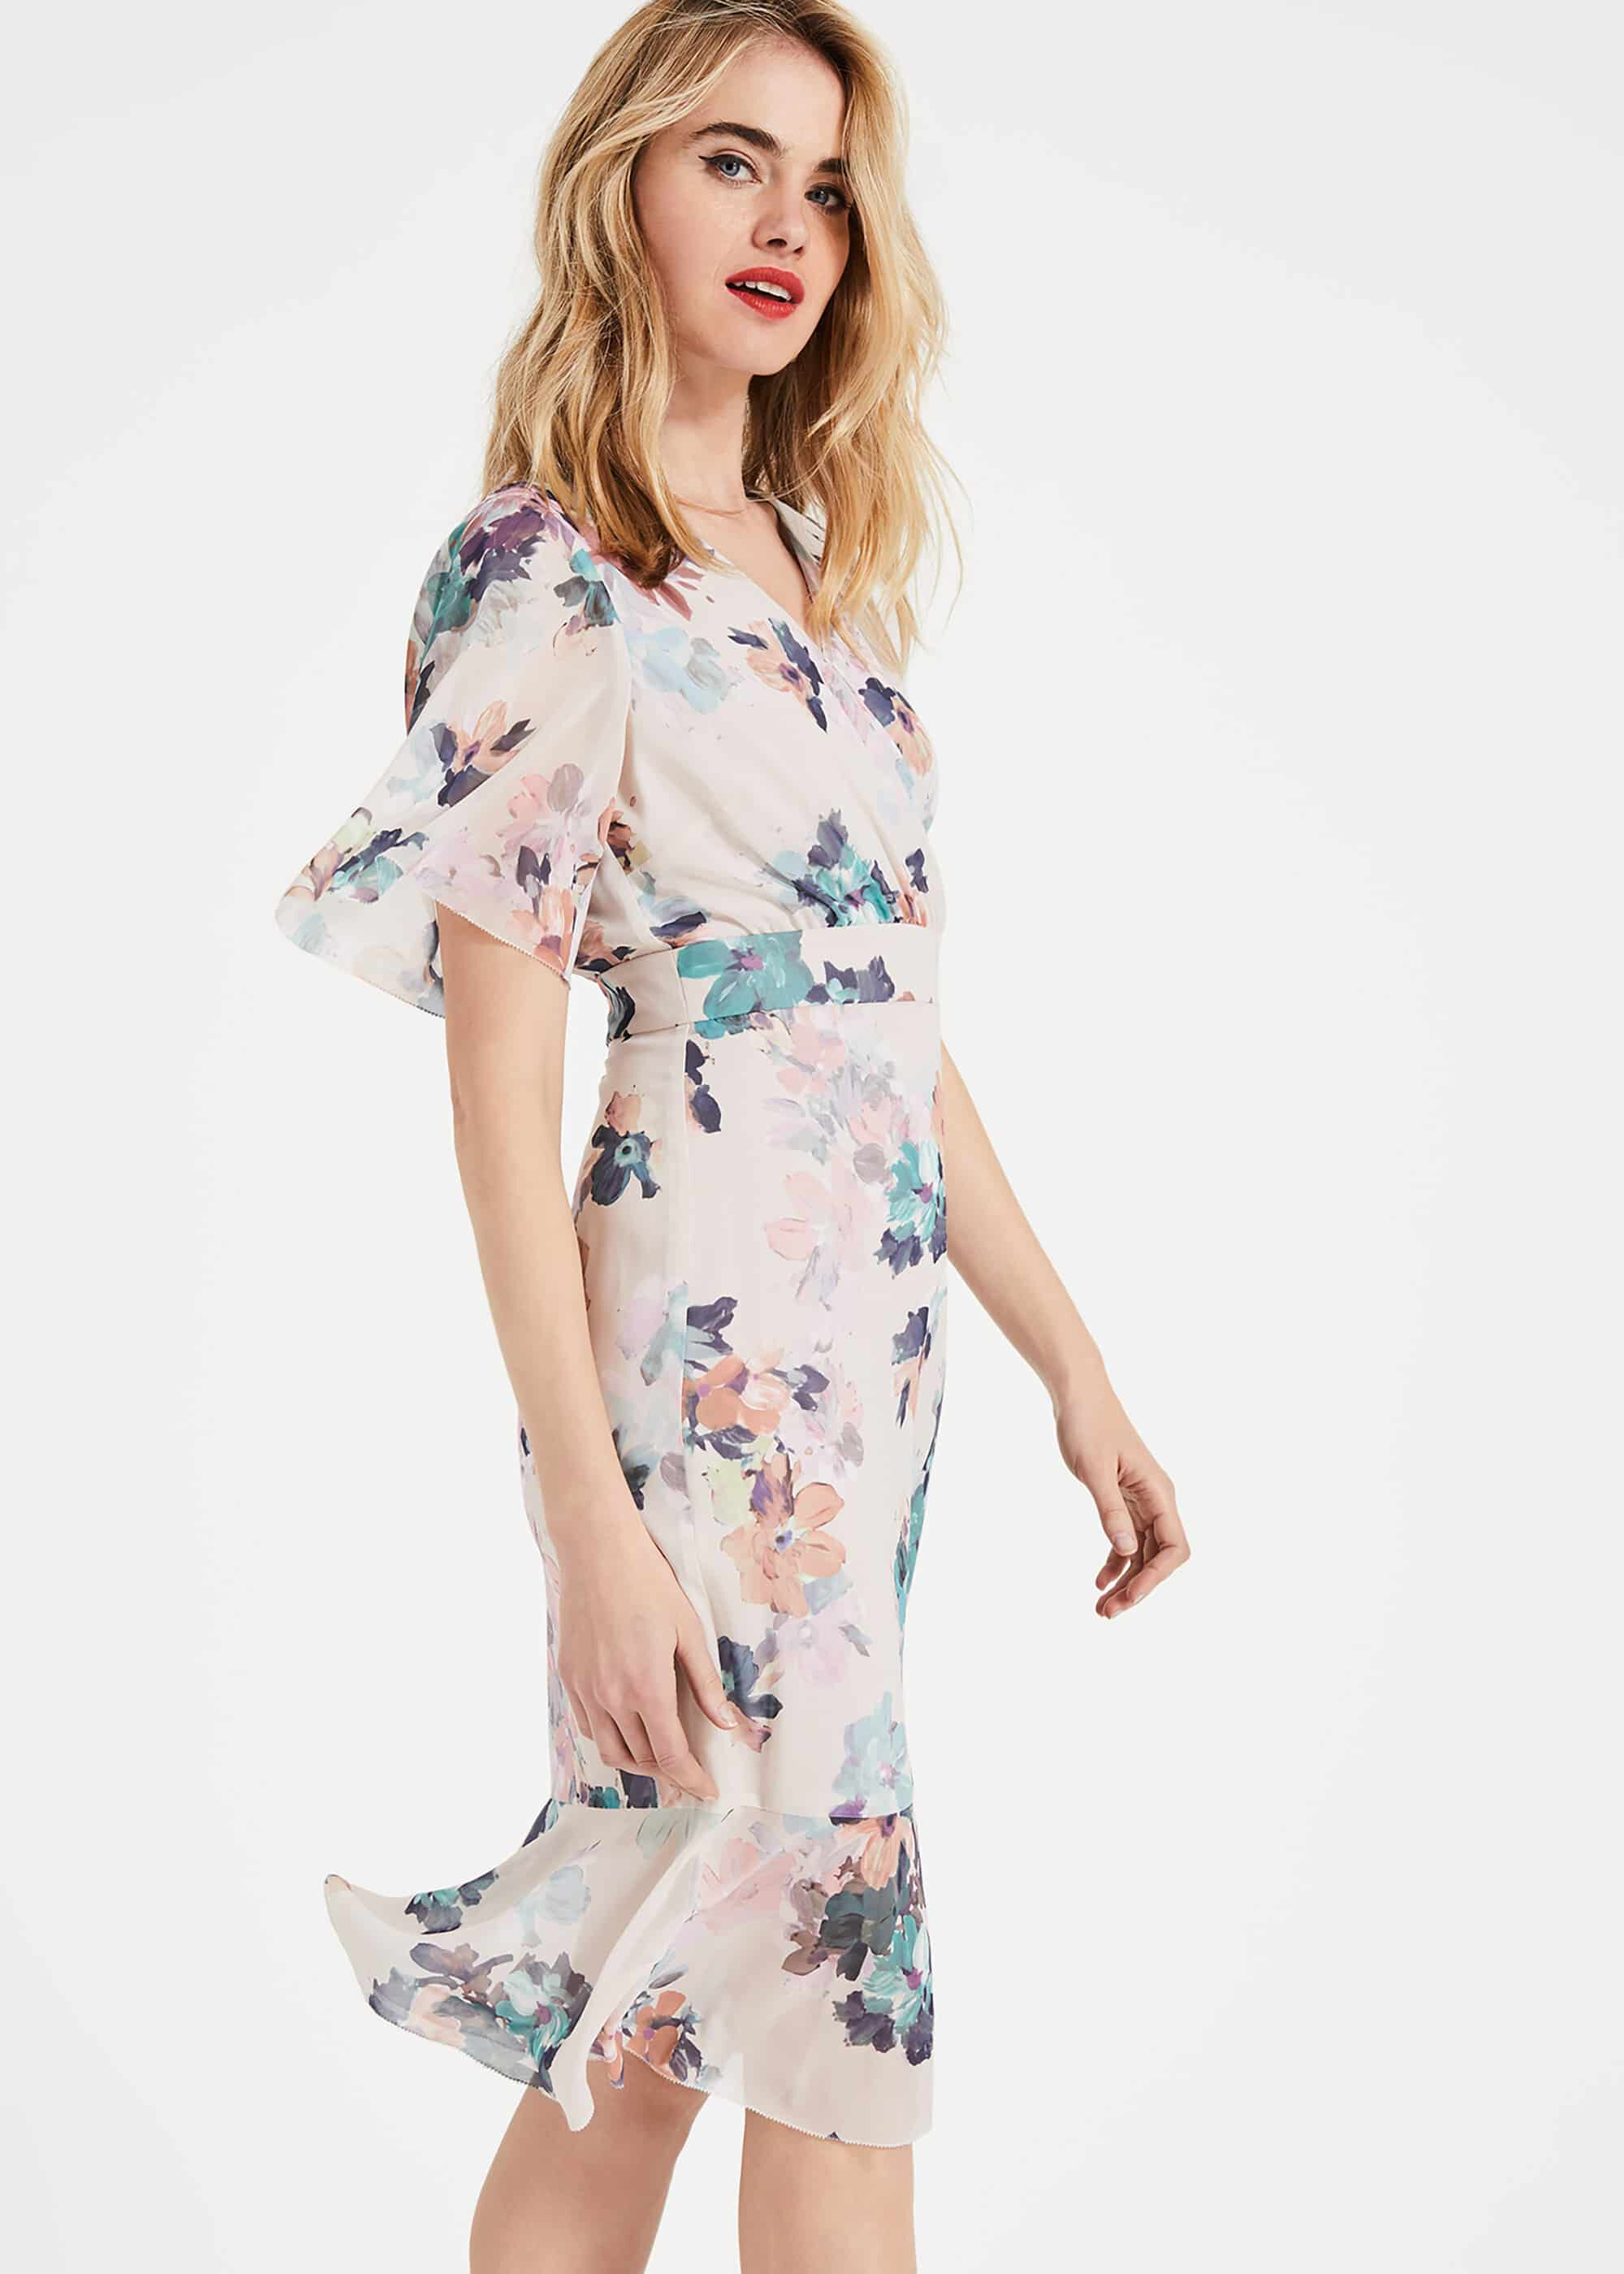 Phase Eight Keely Floral Dress, Cream, Shift, Occasion Dress